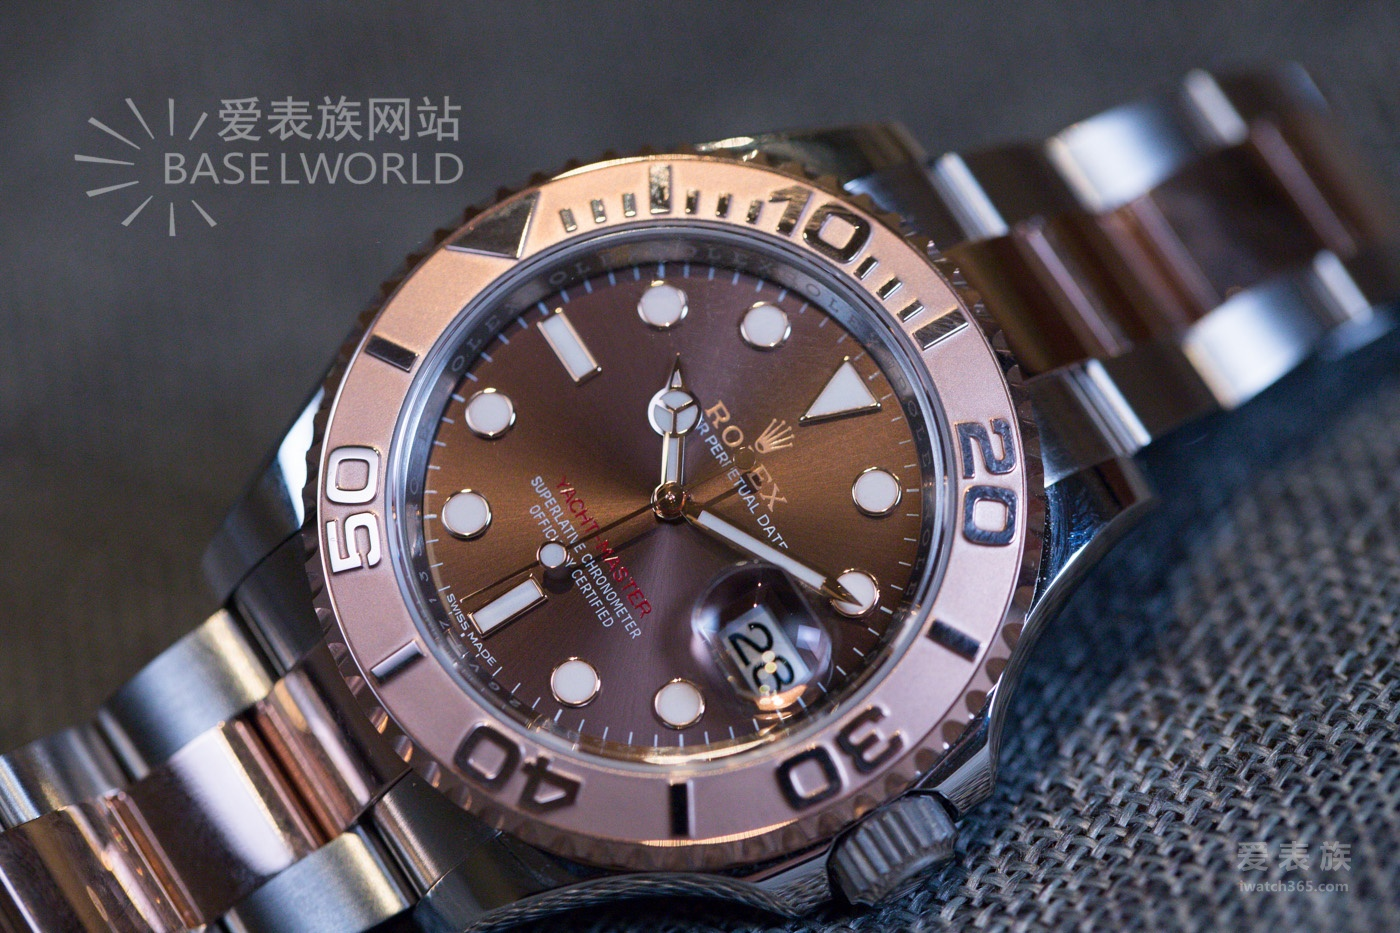 Rolex replica cheap - Rolex Introduced The New Oyster Perpetual Watch Explorer Type Full Luminous Display Ensure A Glance This Unique Model Numbers 3 6 And 9 Are Coated With